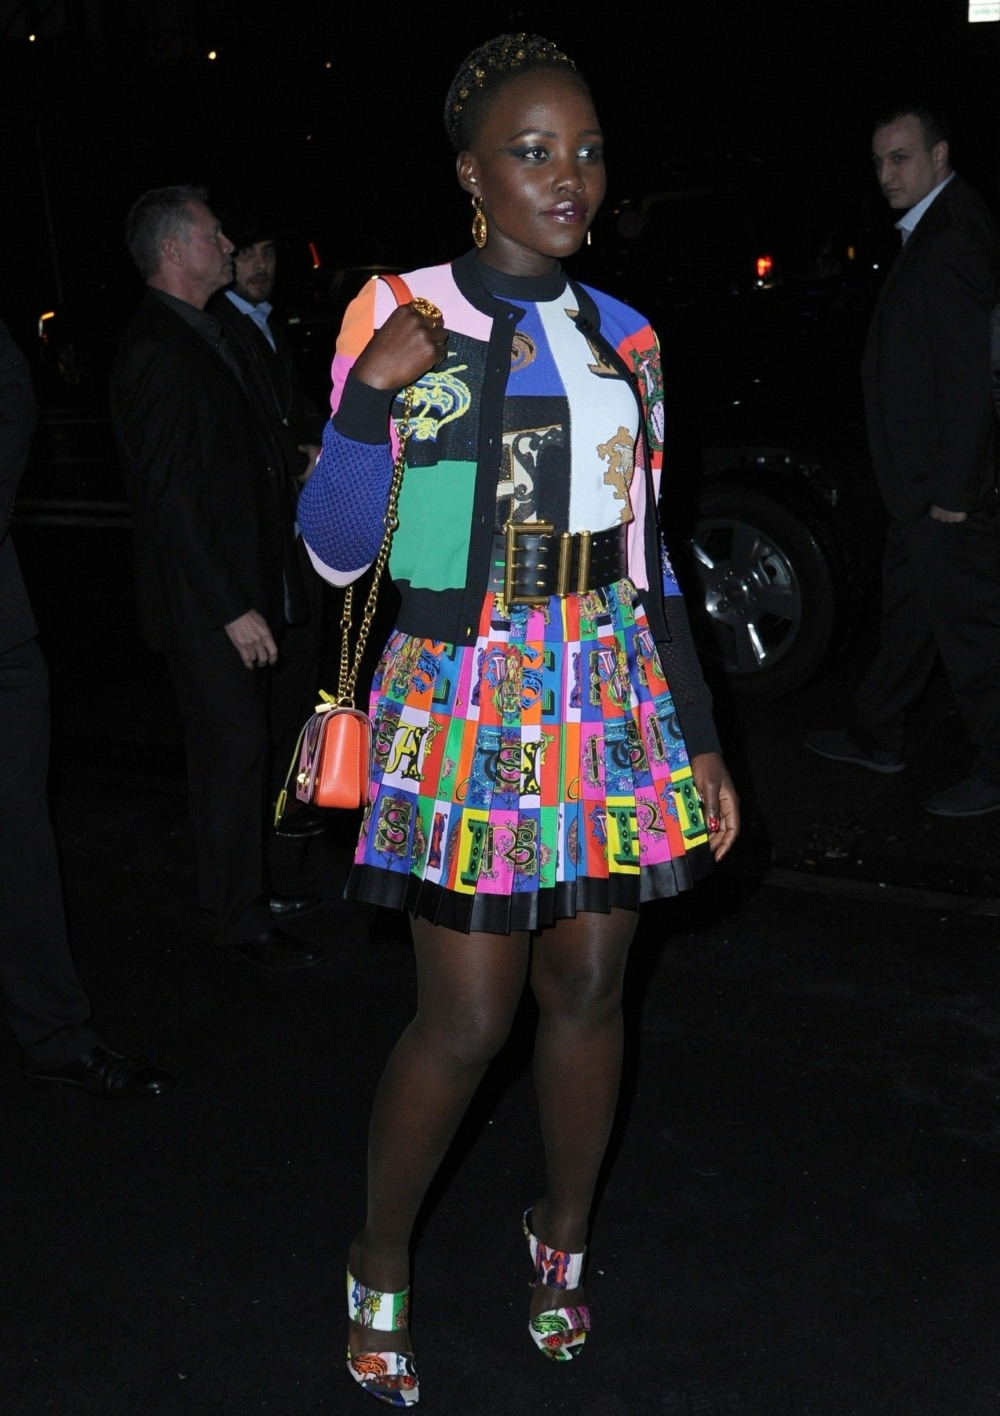 Lupita Nyong'o arrives at the Versace fashion show in New York